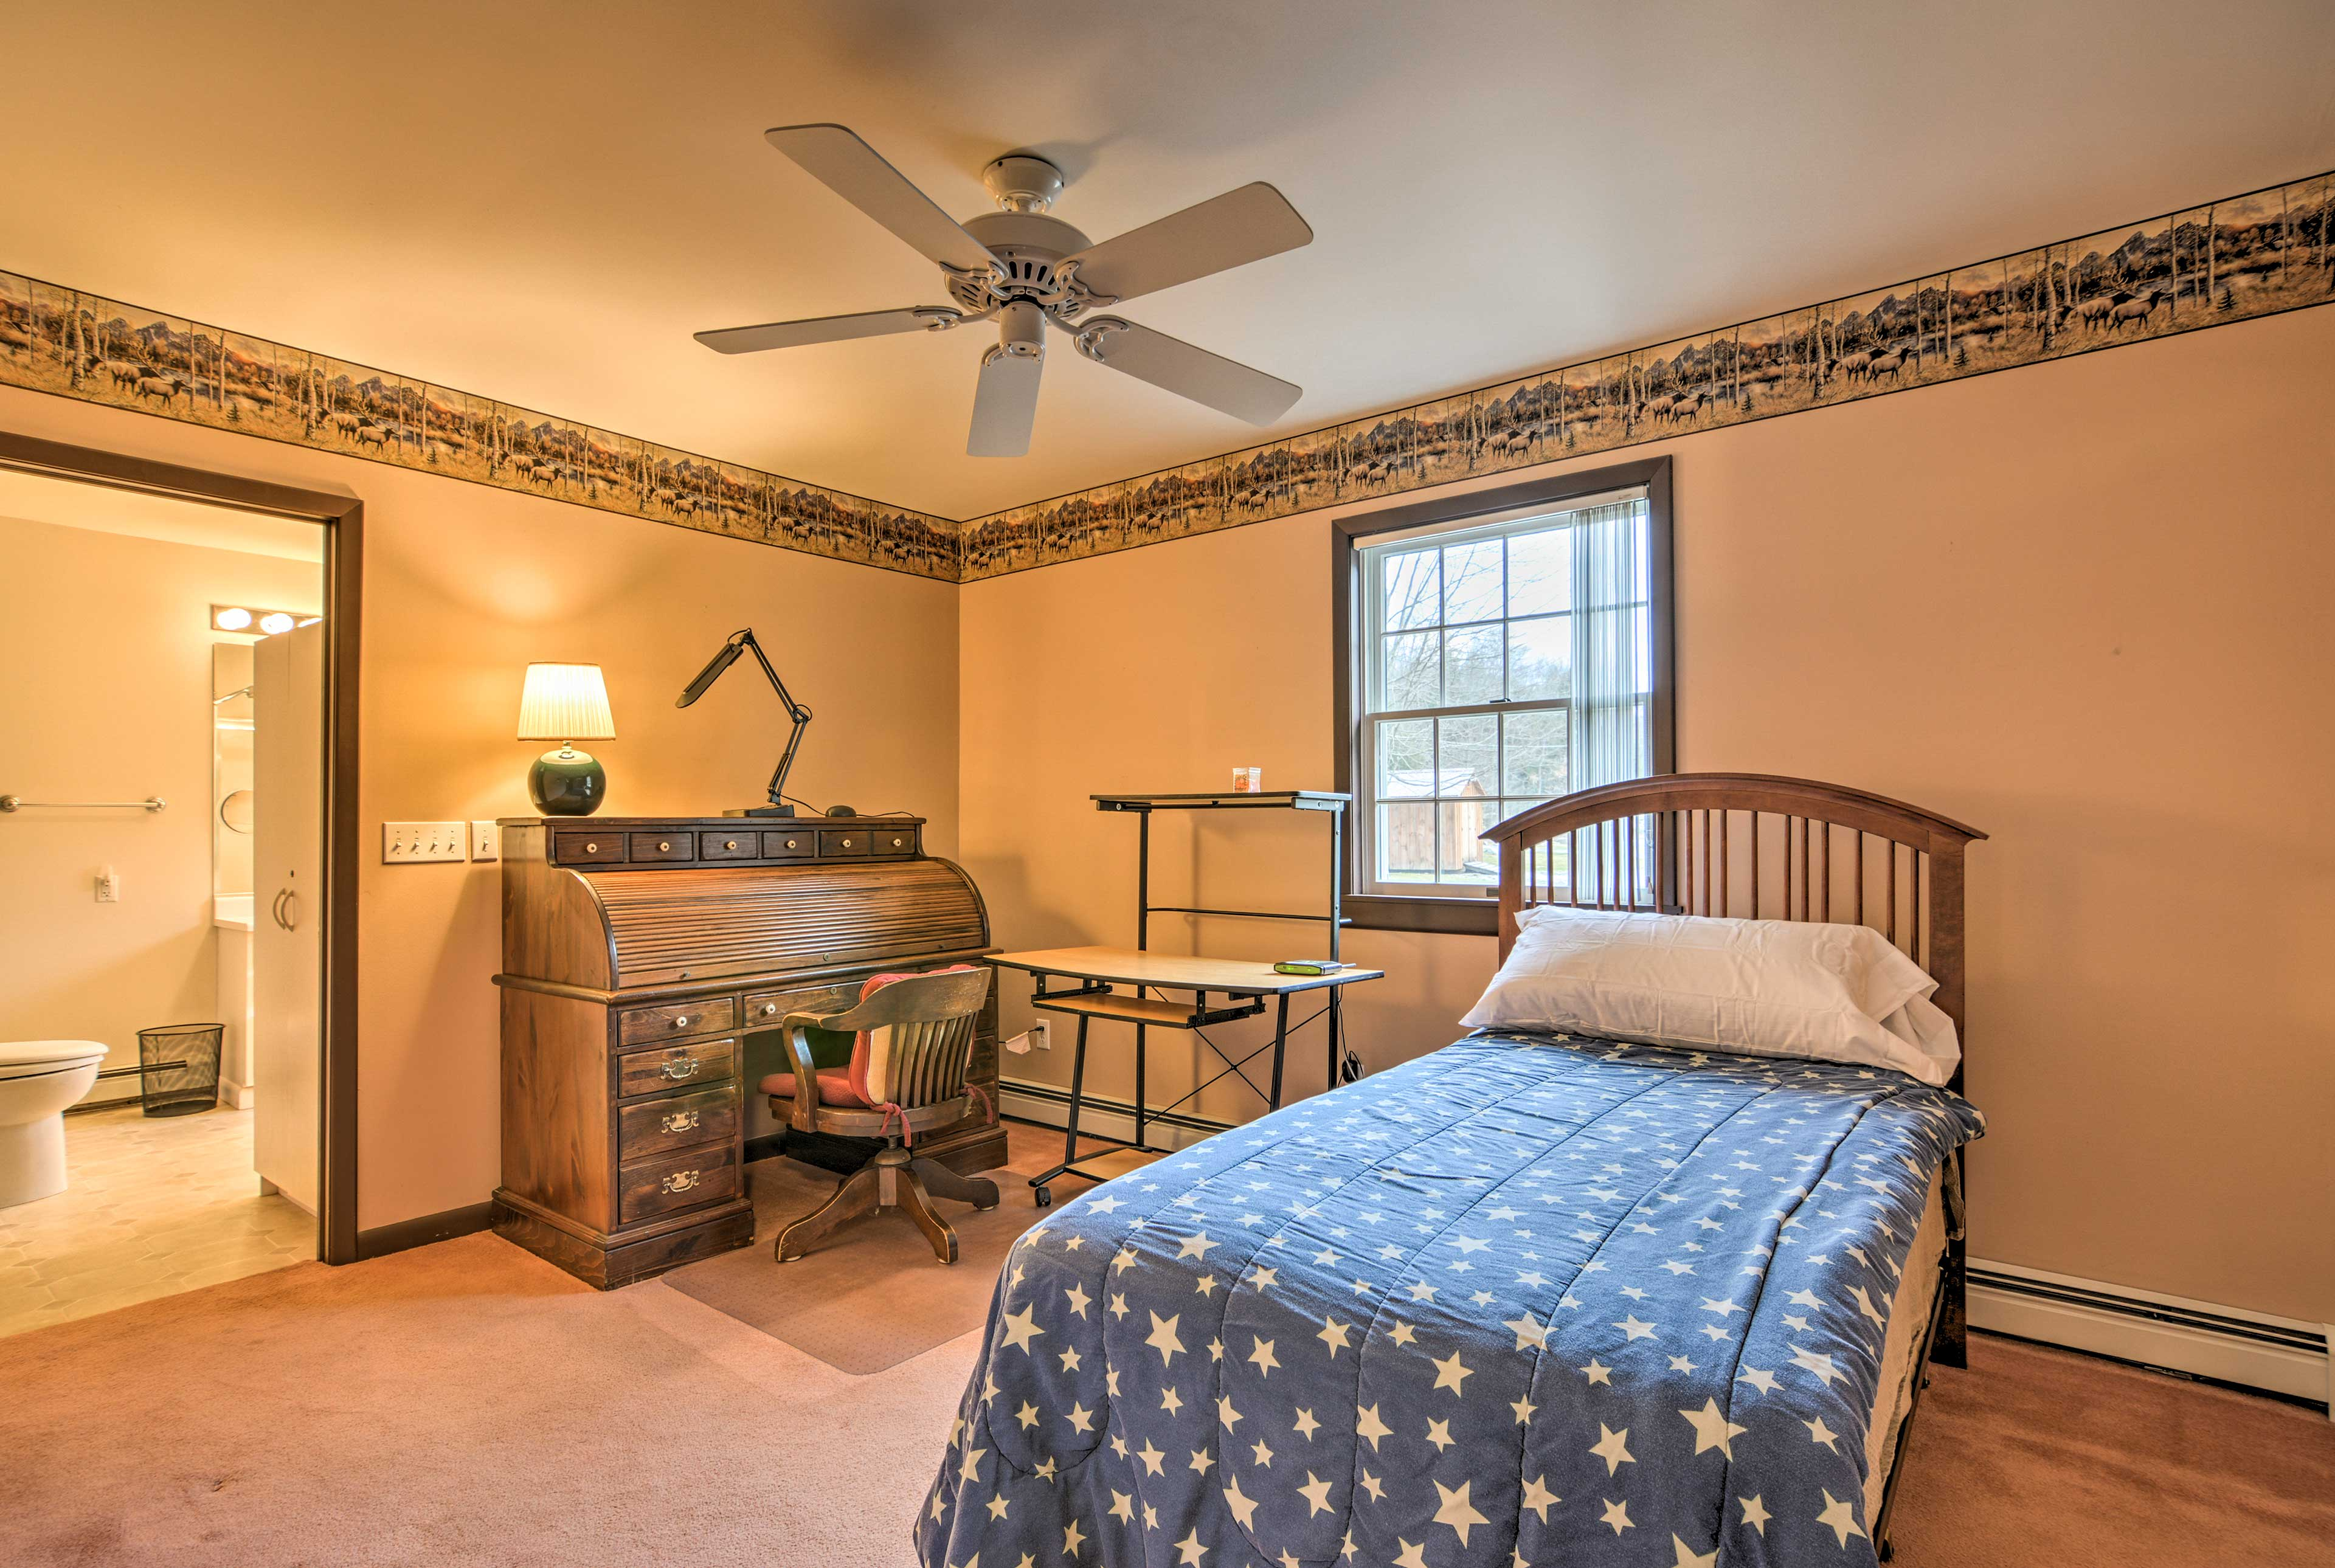 The twin bed in this room is great for 1 person.